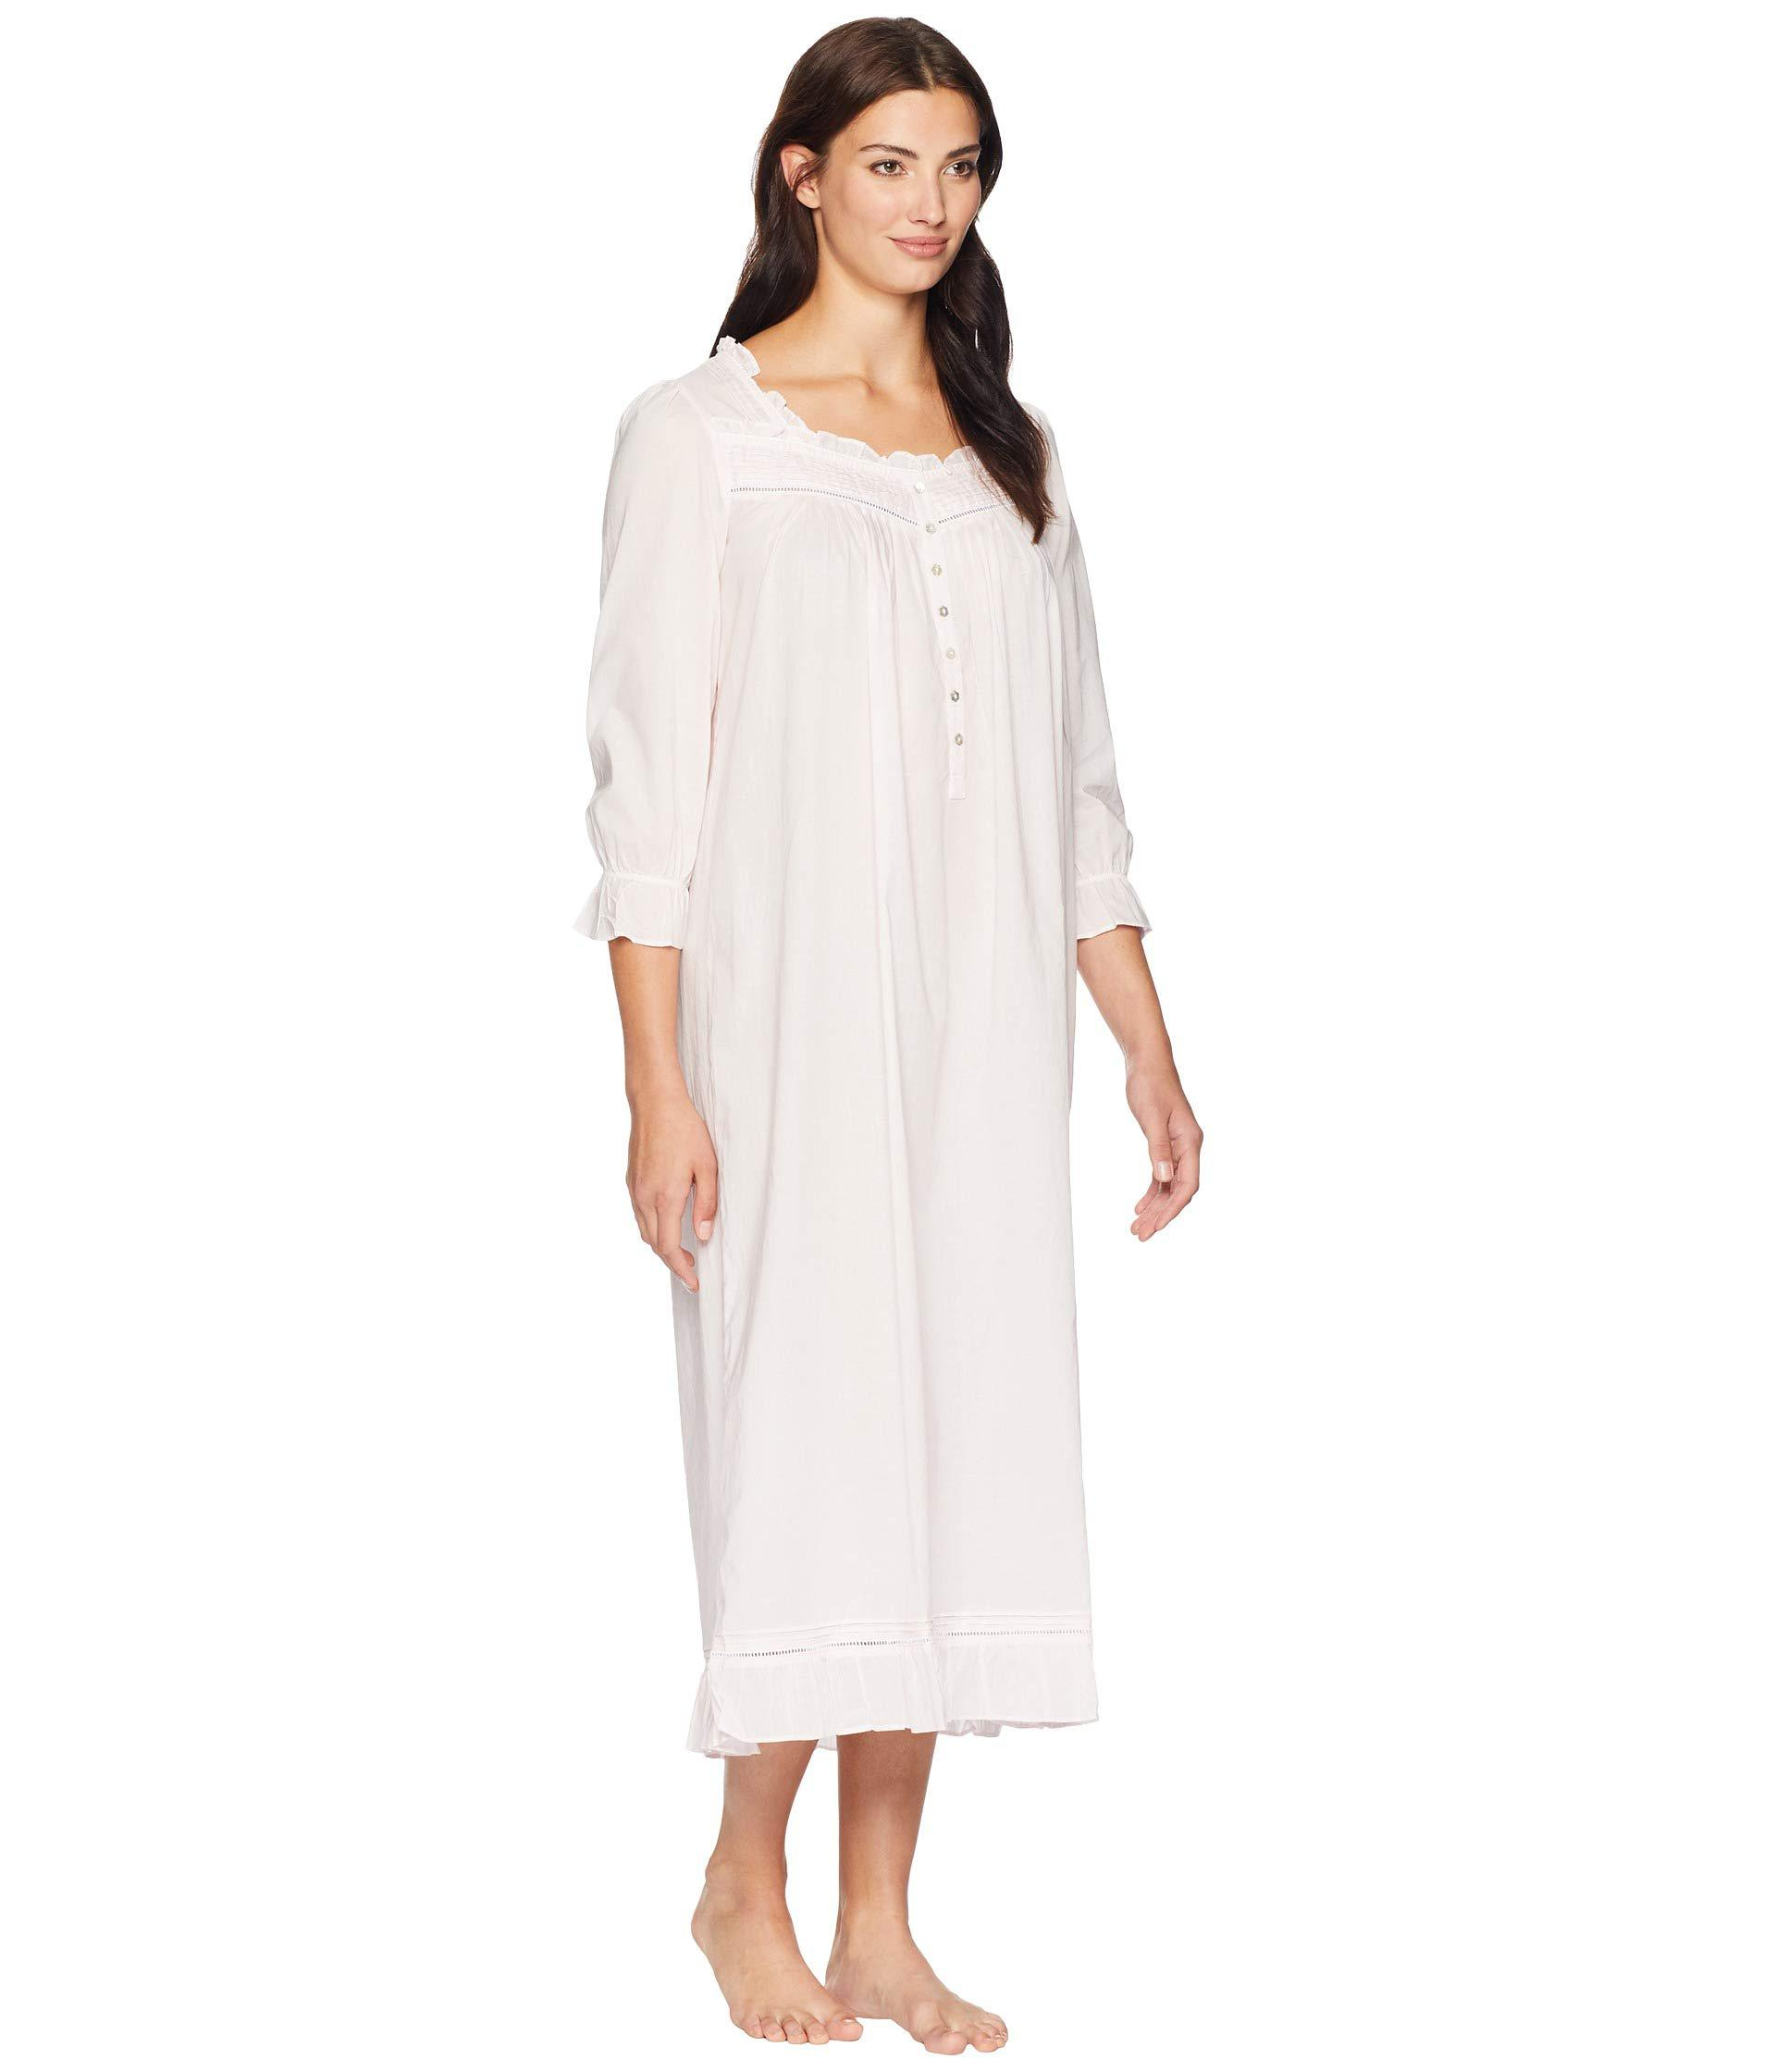 c111d65326 Lyst - Eileen West Cotton Lawn Long Sleeve Ballet Nightgown (solid ...